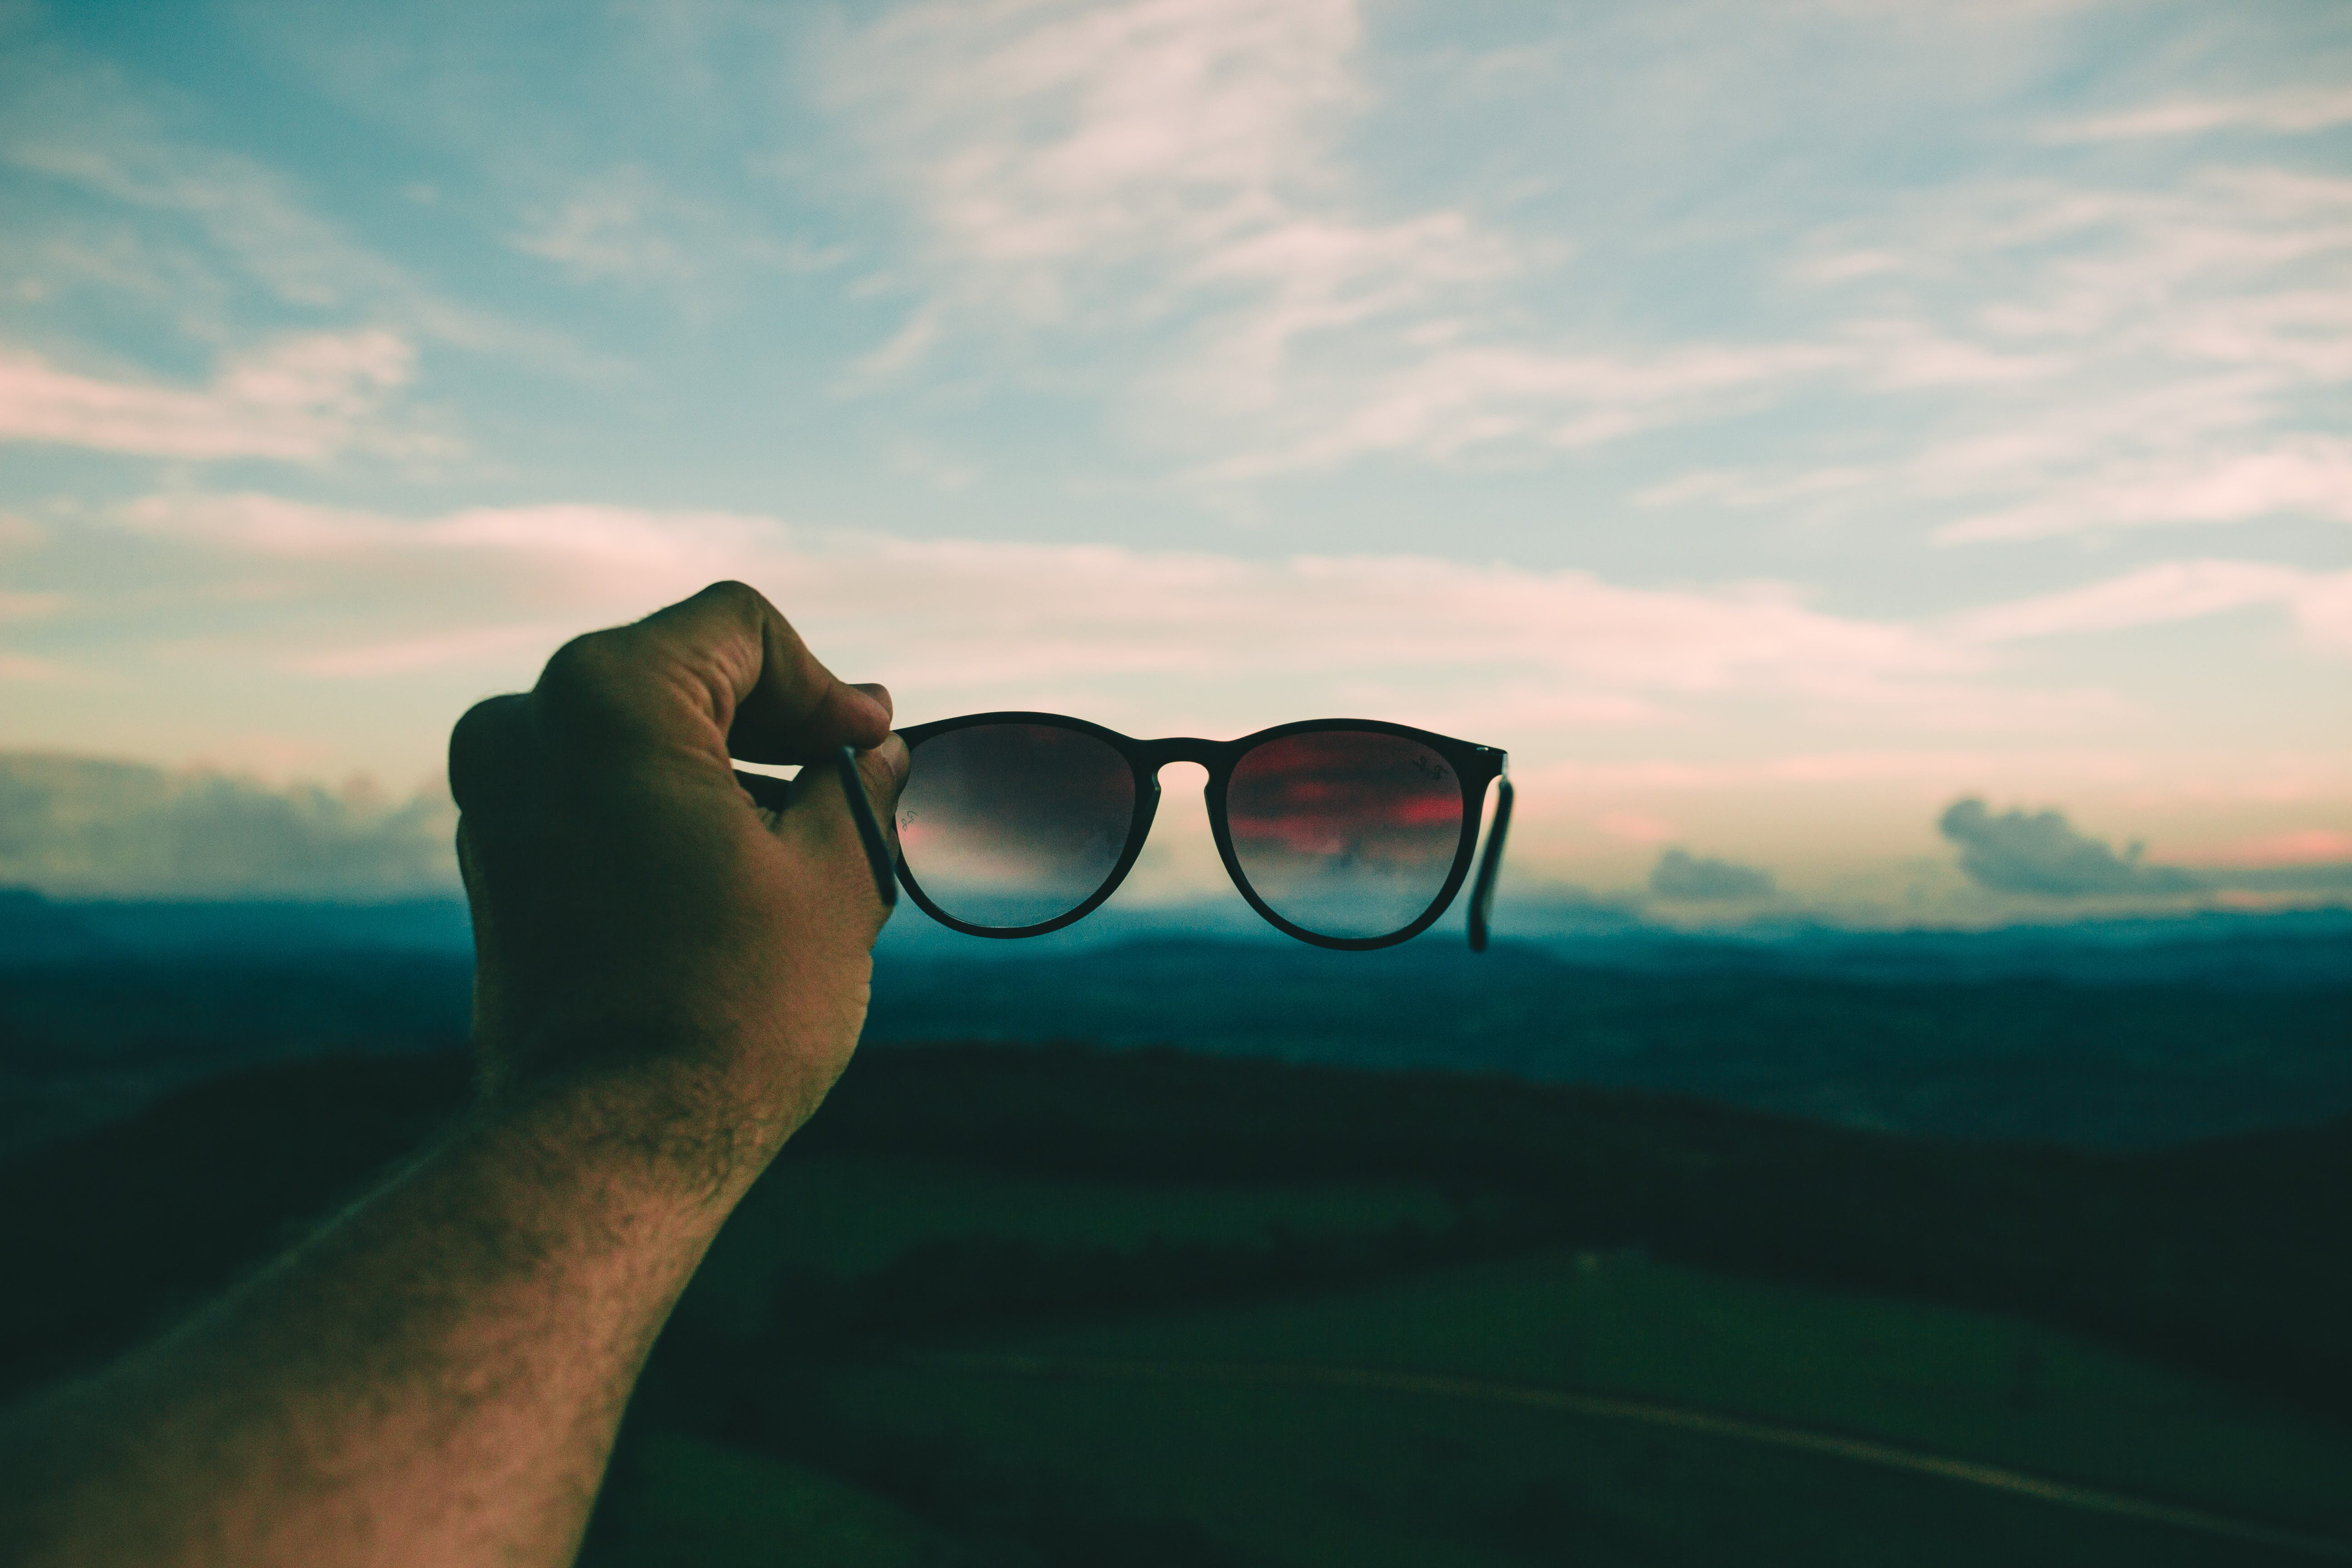 Person Holding Black Framed Sunglasses Under Blue Sky and White Clouds